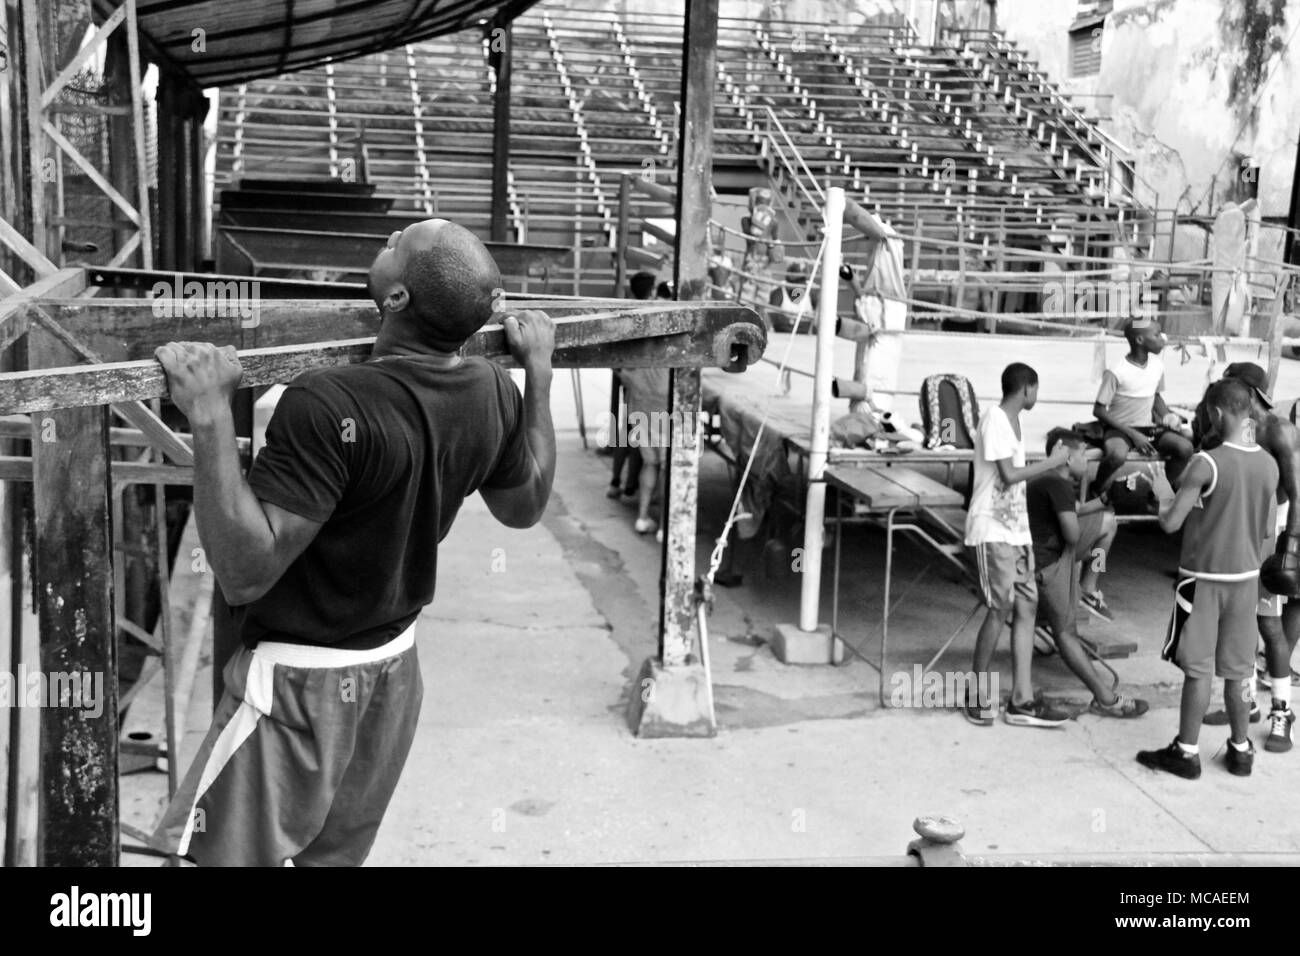 A black and white picture of a Cuban man with a black t-shirt doing a pull up in the boxing ring in Havana, July 2017 - Stock Image